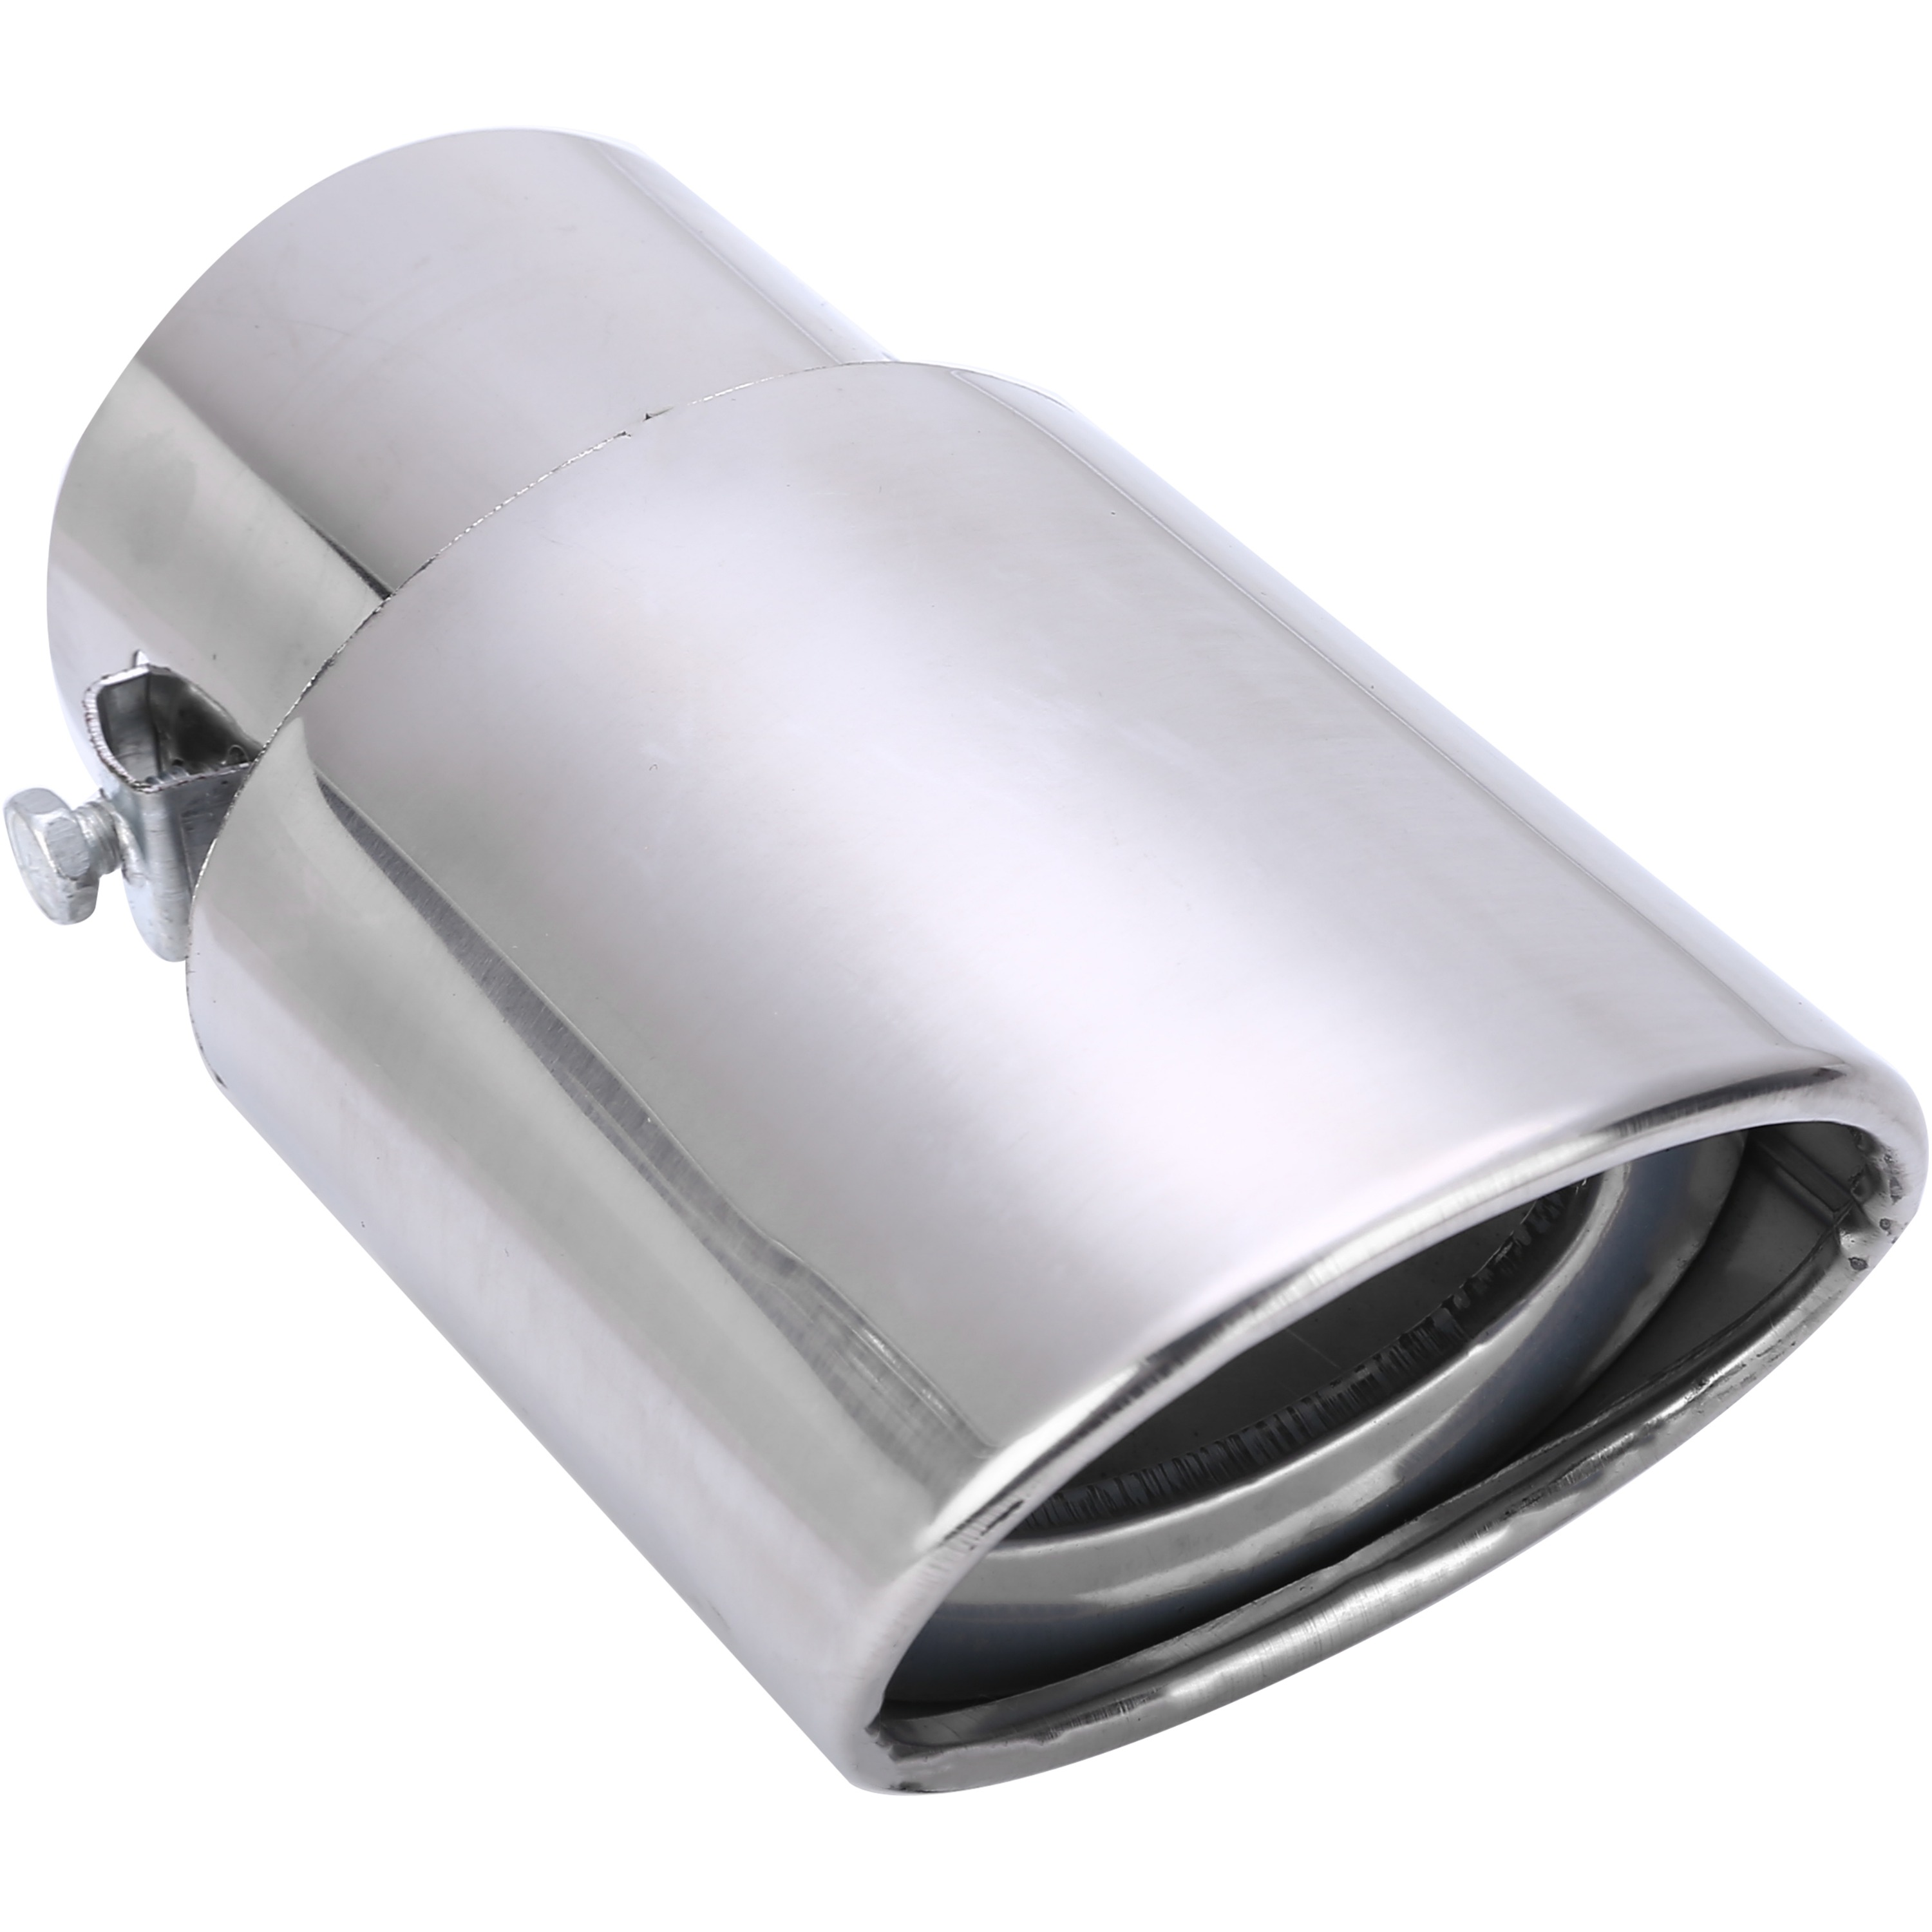 2017 Hot Sale Universal Car Rear Round Stainless Steel Exhaust Muffler Tail Pipe Tip Accessories